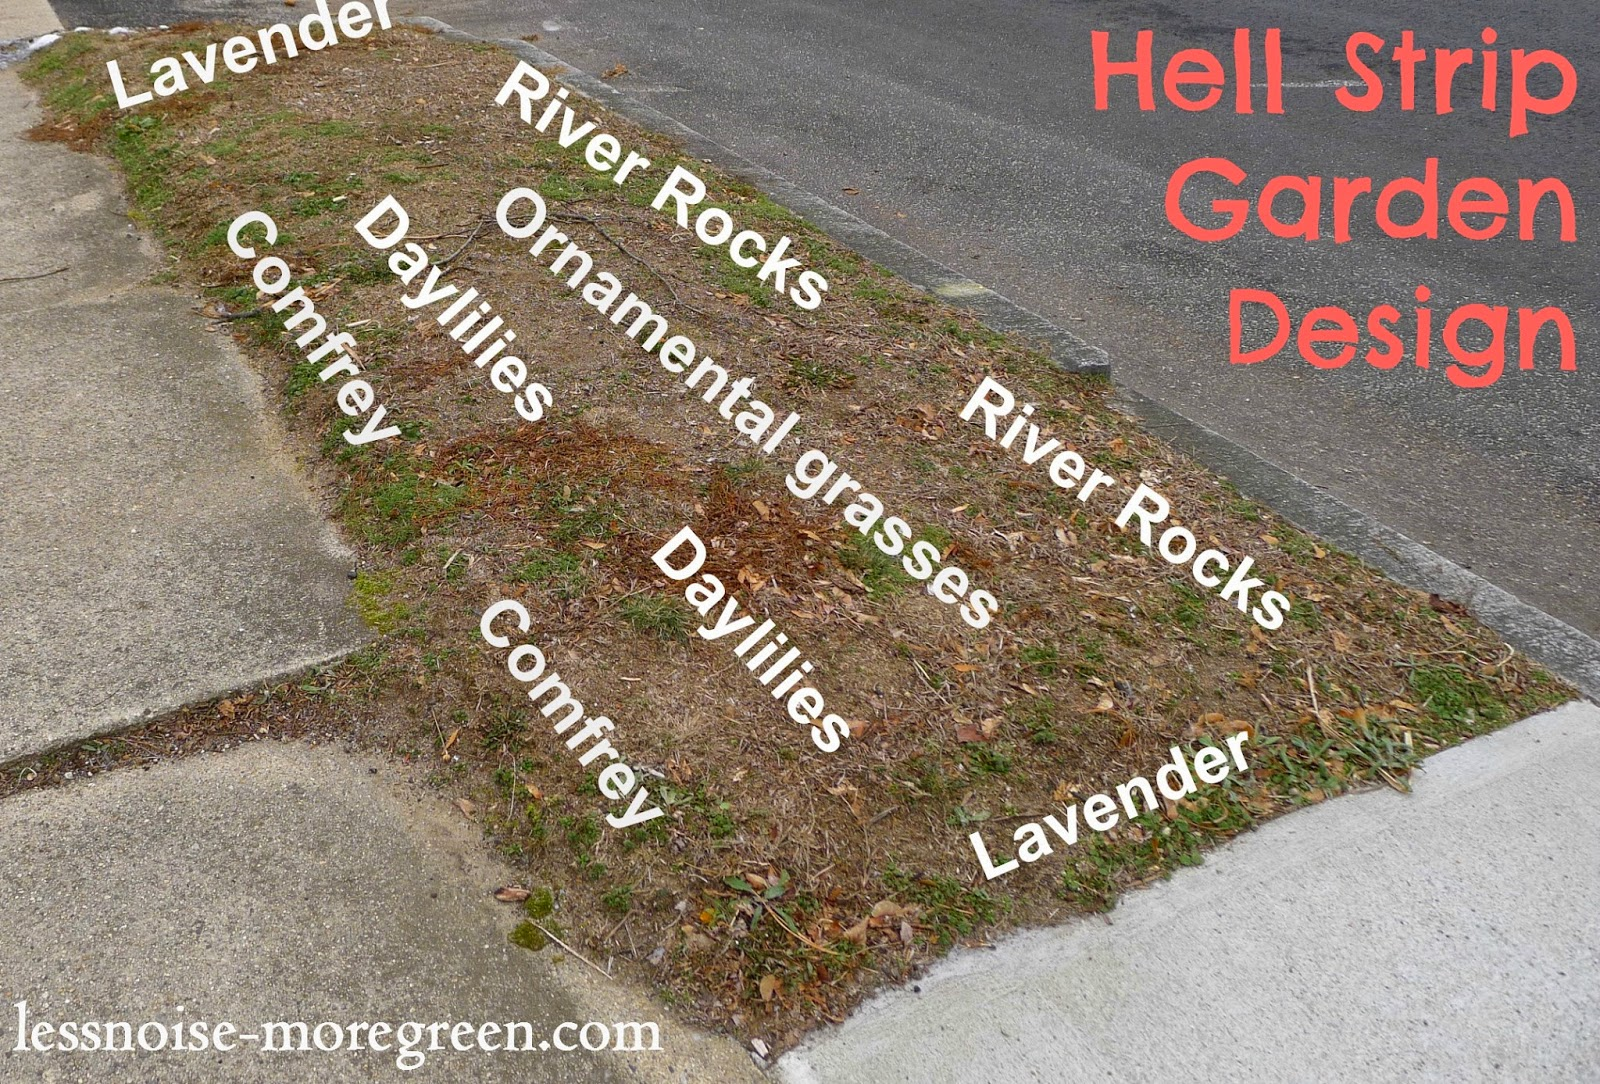 Hell Strip Garden Design, Rhode Island